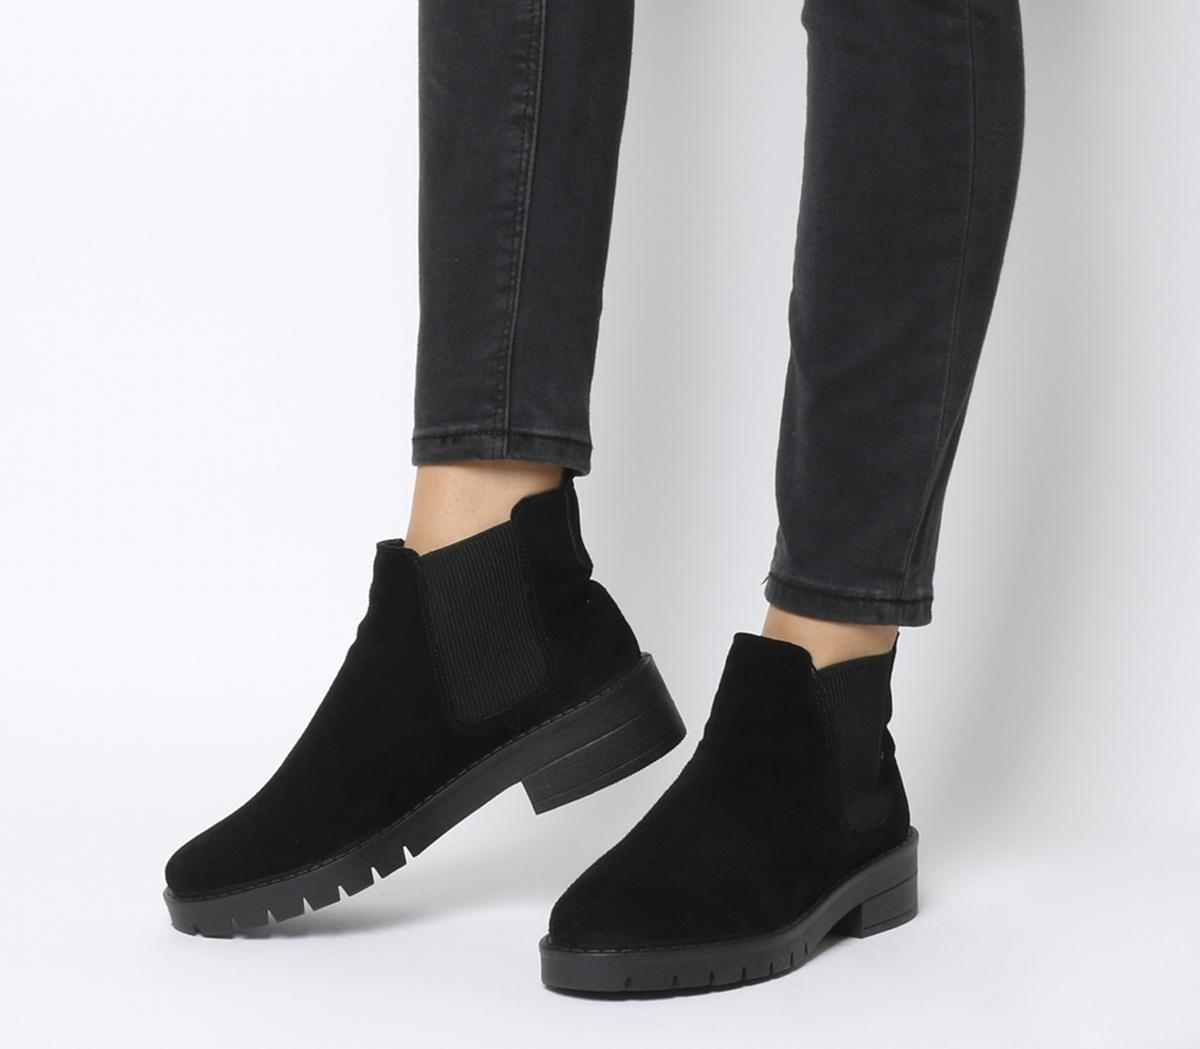 Office Aimee Cleated Chelsea Boots